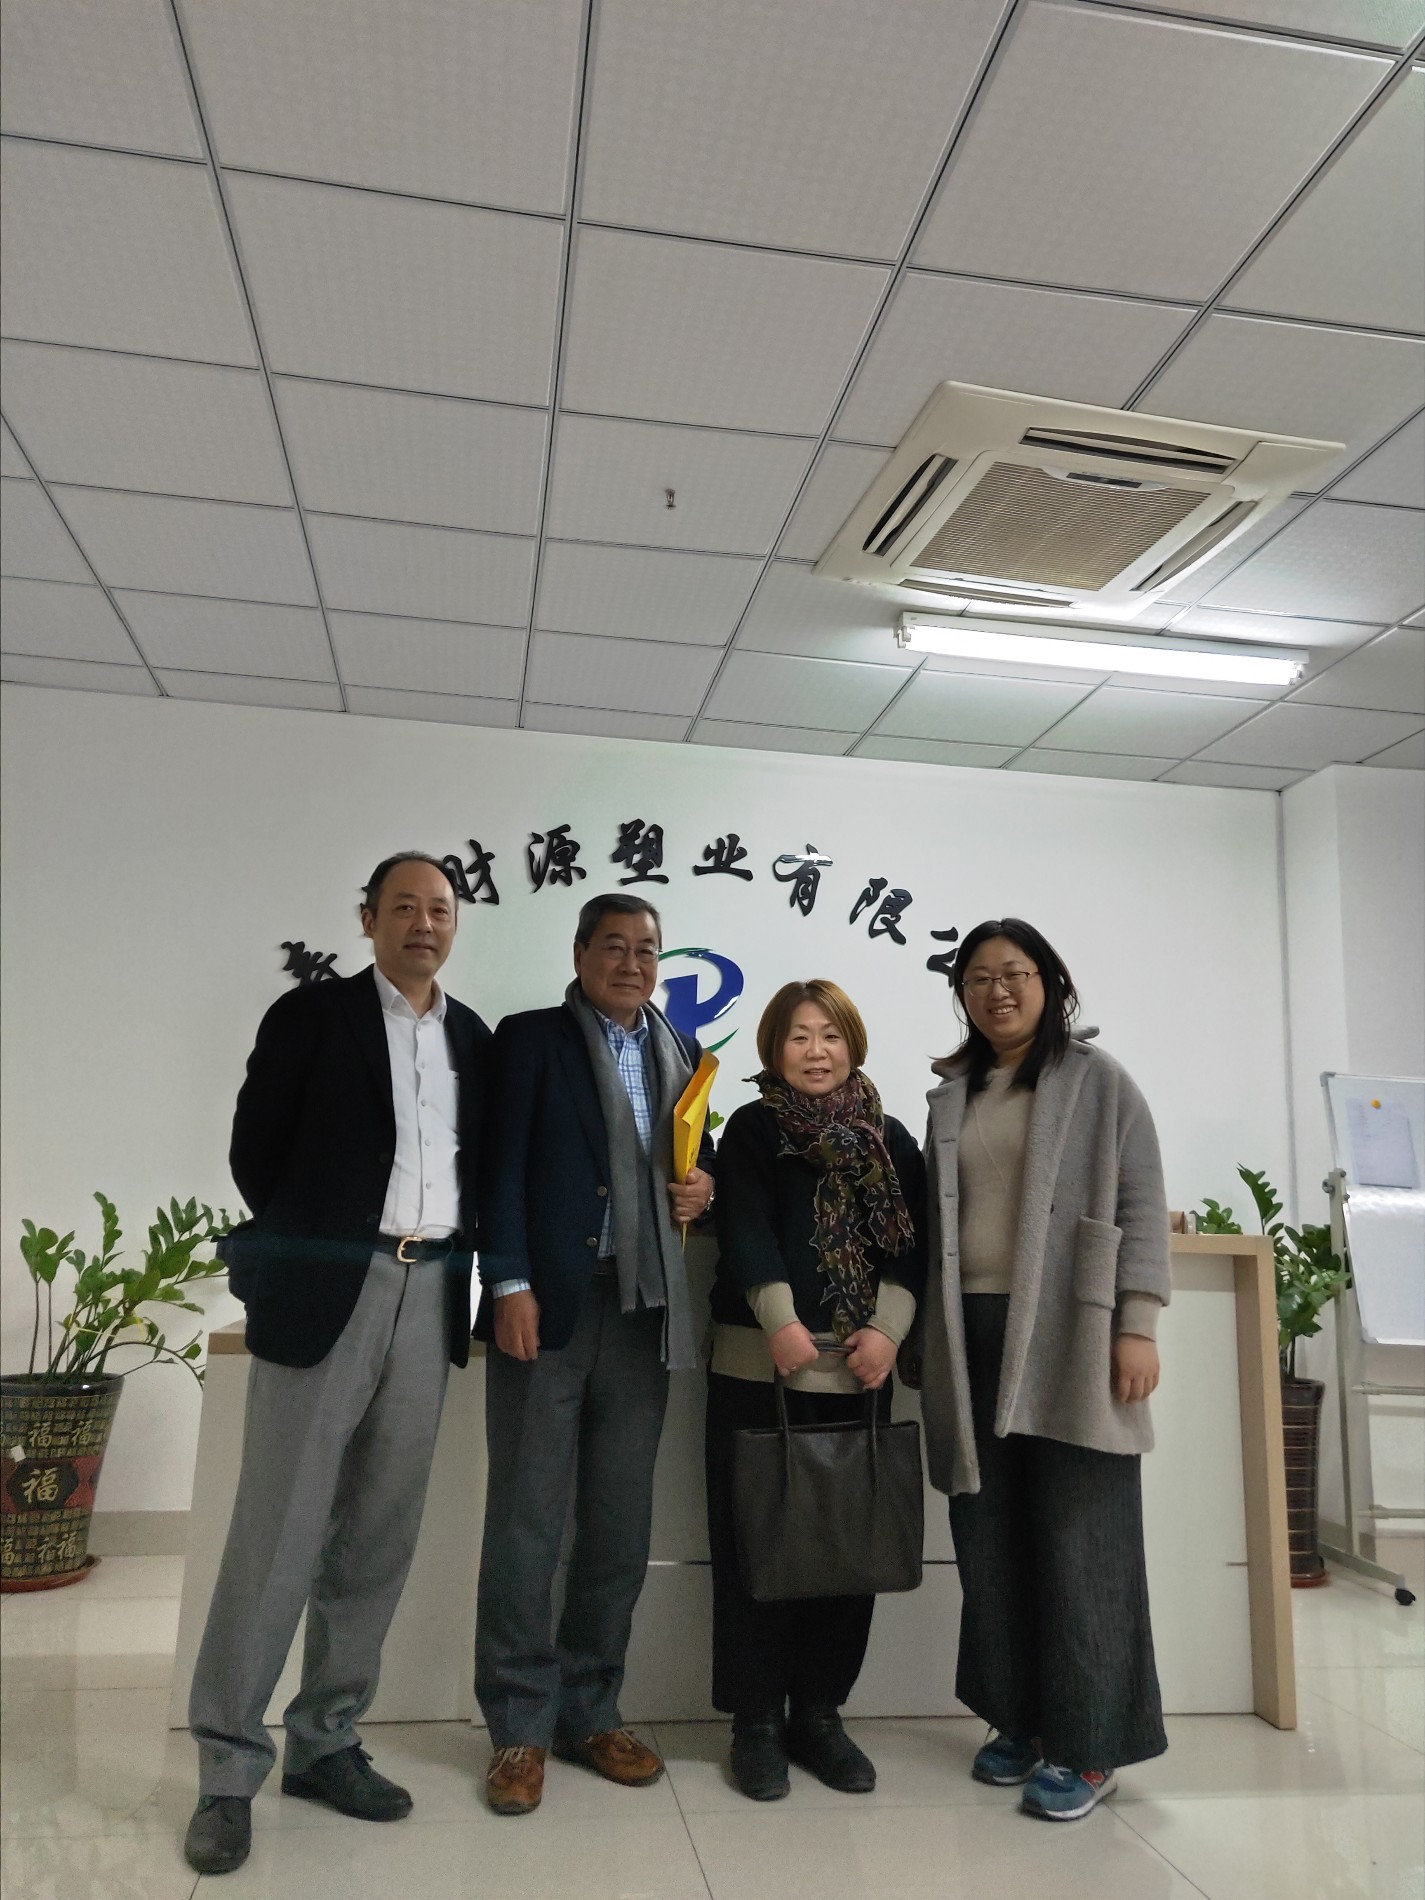 Our customers visit our company